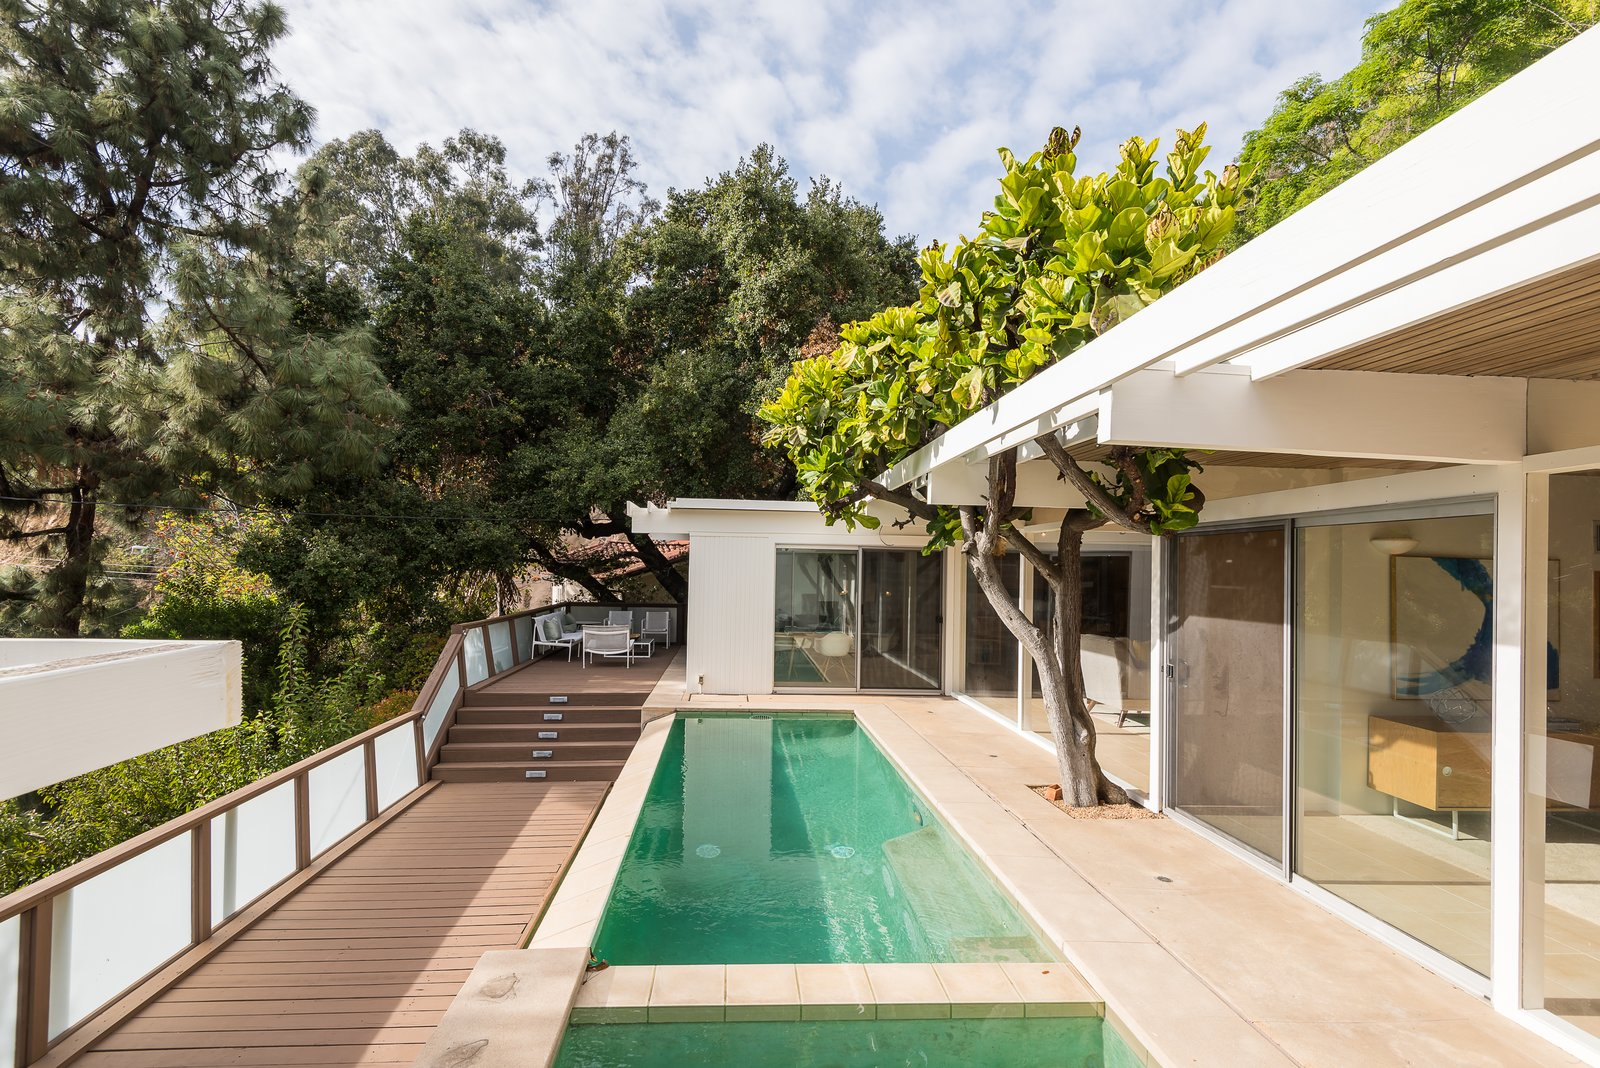 Outdoor, Large Pools, Tubs, Shower, Large Patio, Porch, Deck, Trees, Plunge Pools, Tubs, Shower, Lap Pools, Tubs, Shower, Side Yard, and Walkways A pool and outdoor lounge area that's shaded by trees.  Best Photos from Composer Paul Buckmaster's Midcentury Gem Asks $1.39M